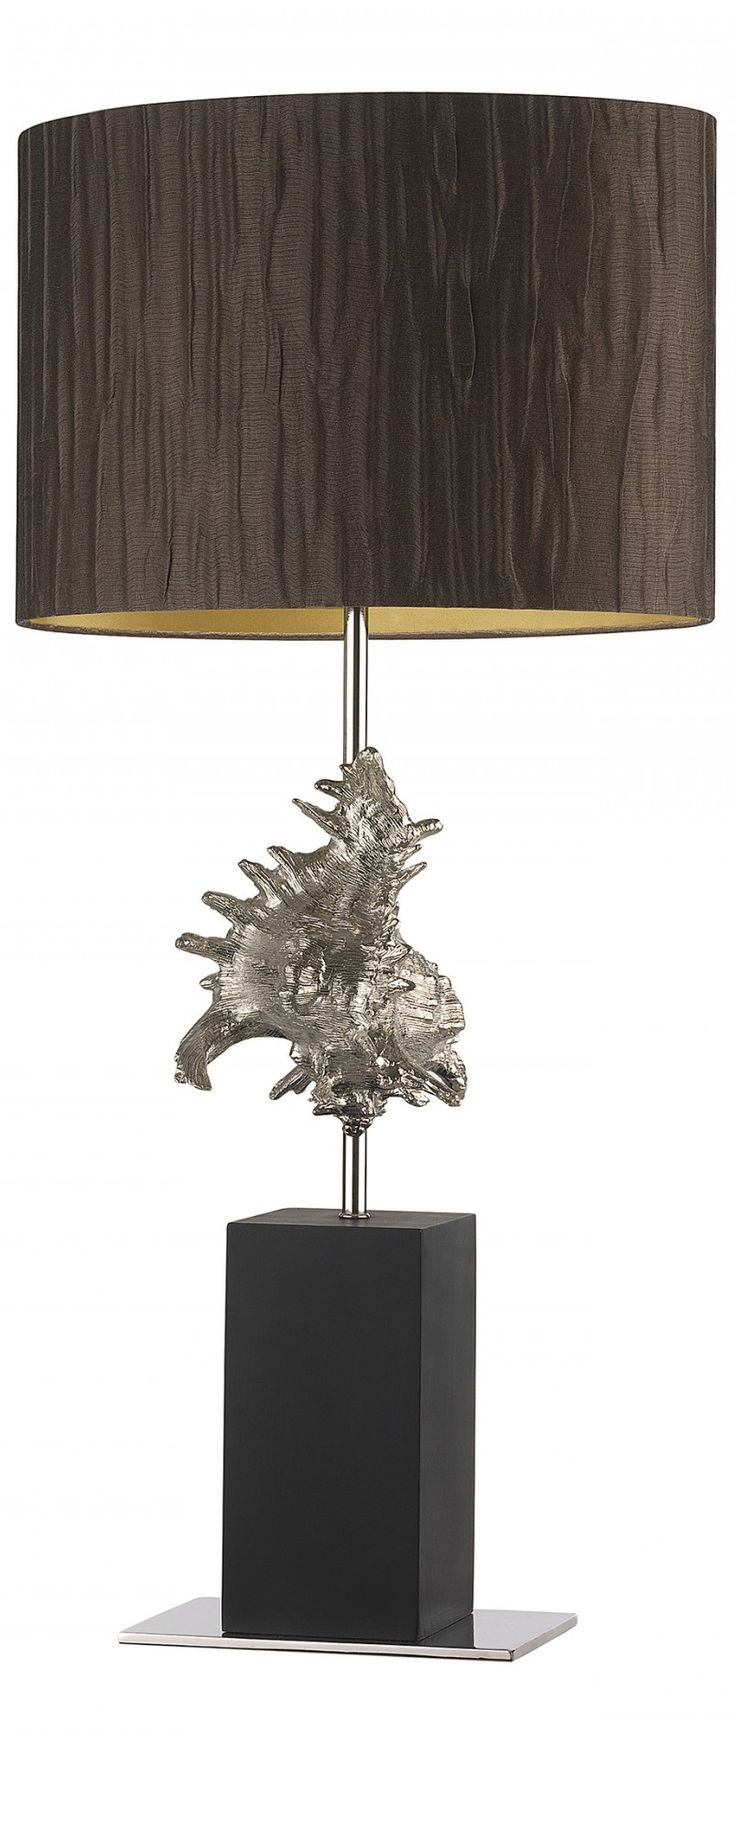 Modern lamp tables -  Silver Silver Table Lamp Table Lamps Modern Table Lamps Contemporary Table